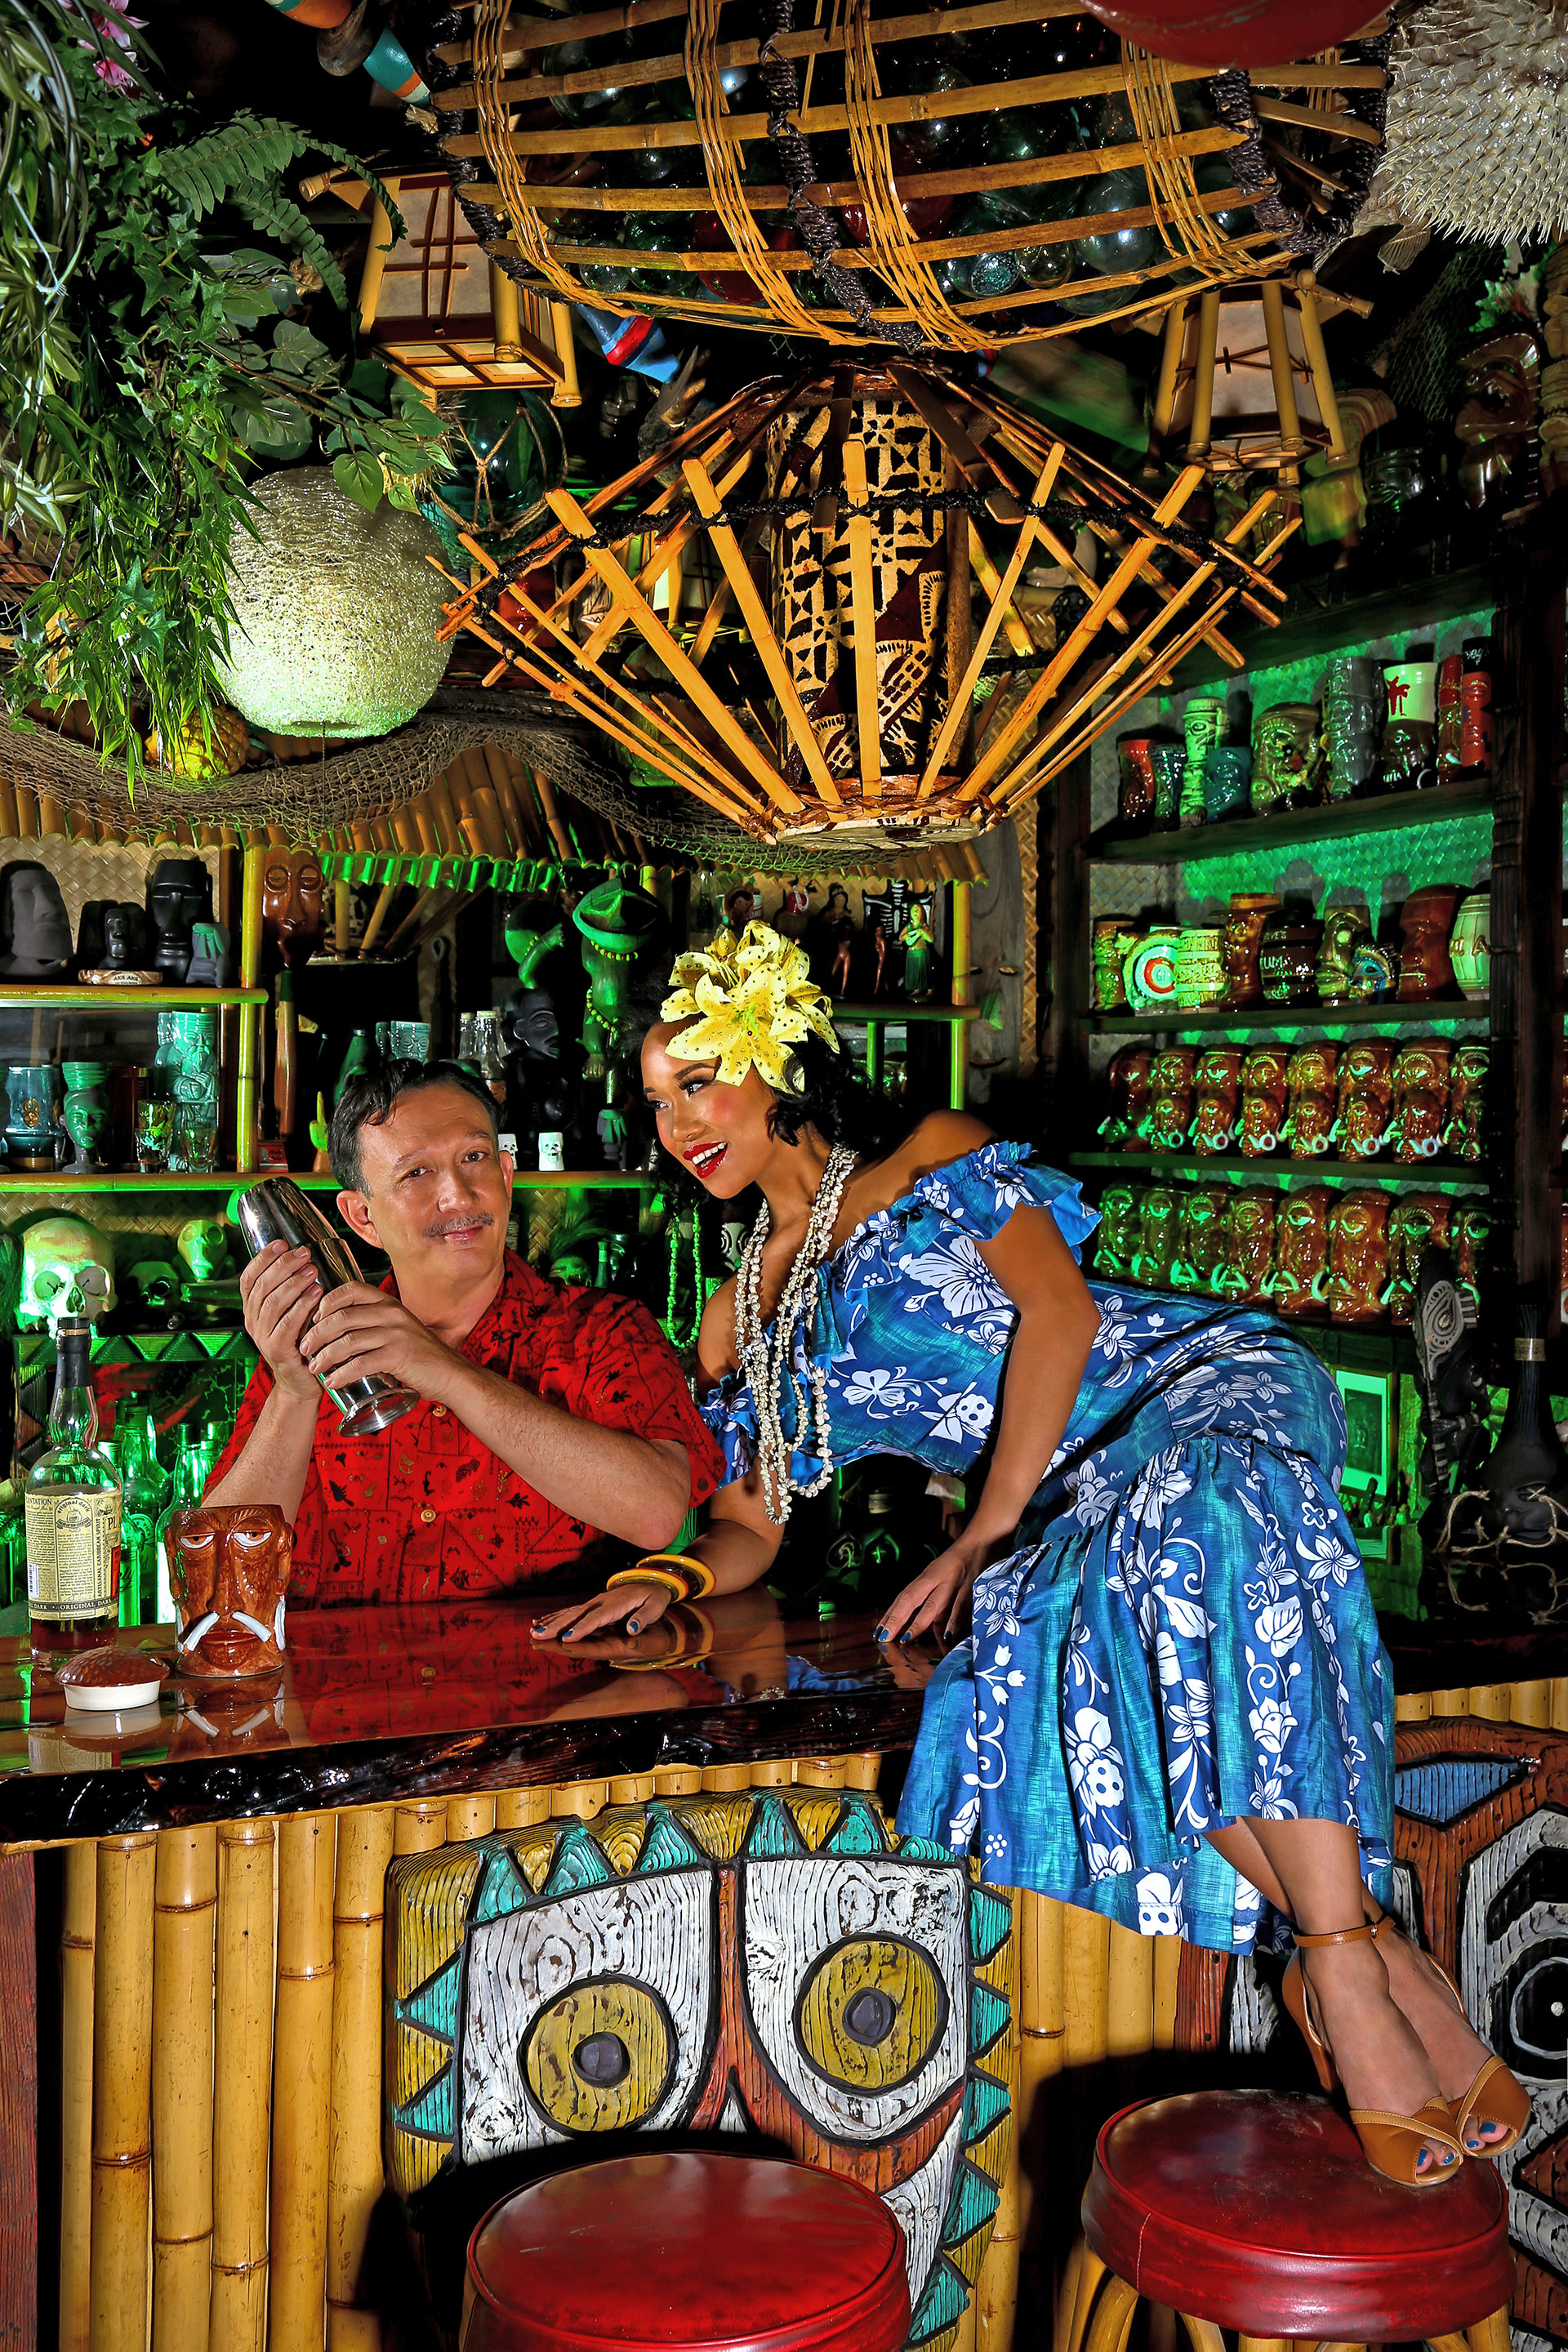 San Diego Tiki Culture, Then and Now, To Be Featured in New Book